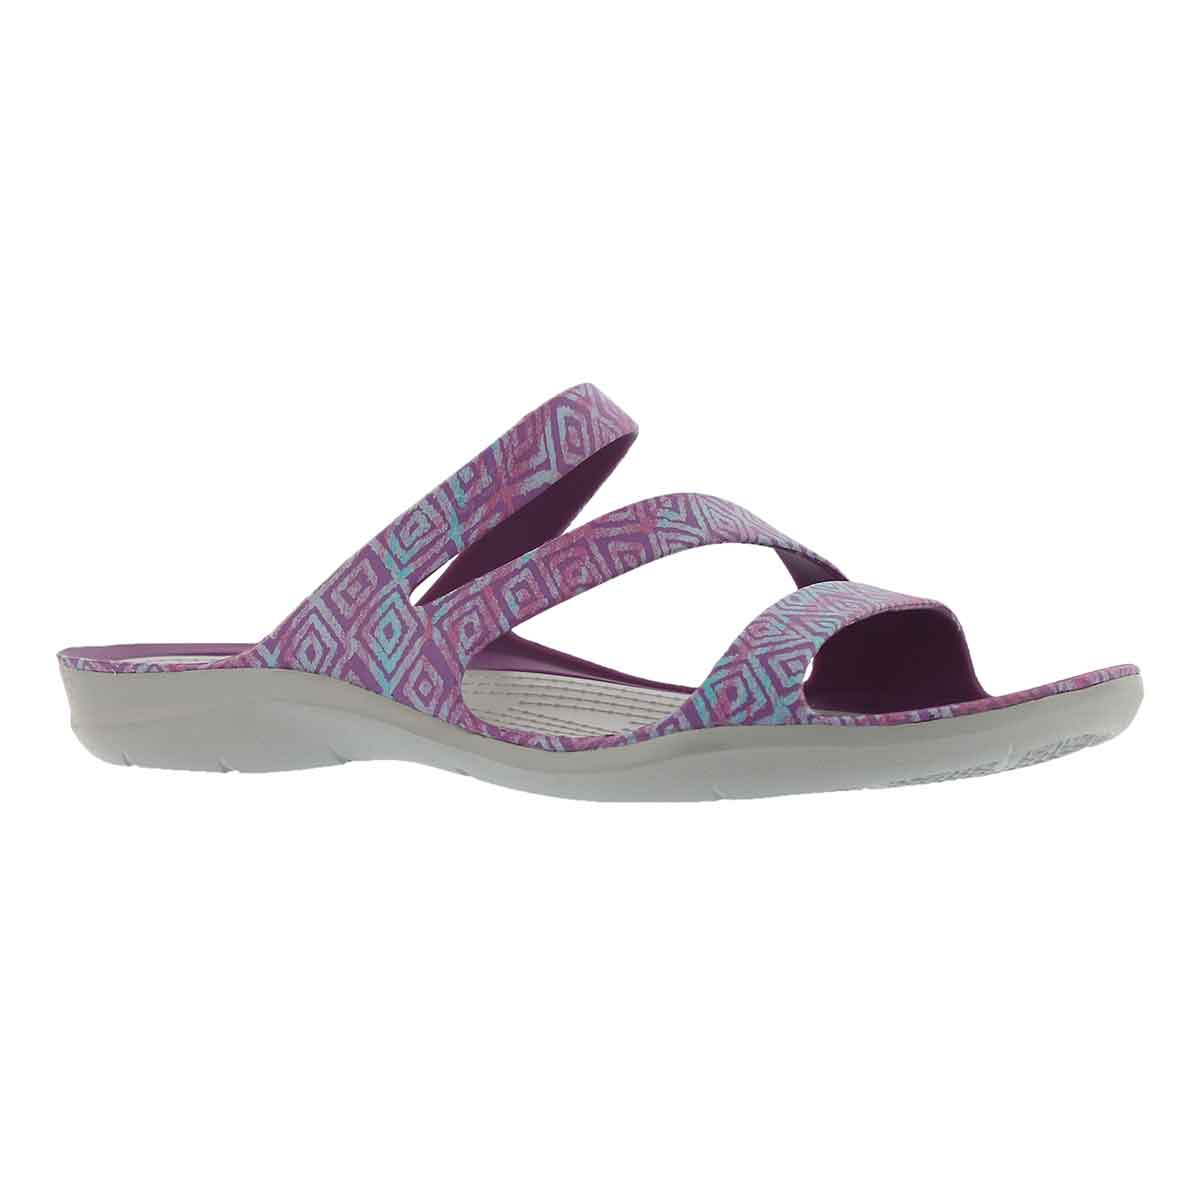 Lds Swiftwater Graphic amethyst/gry sld